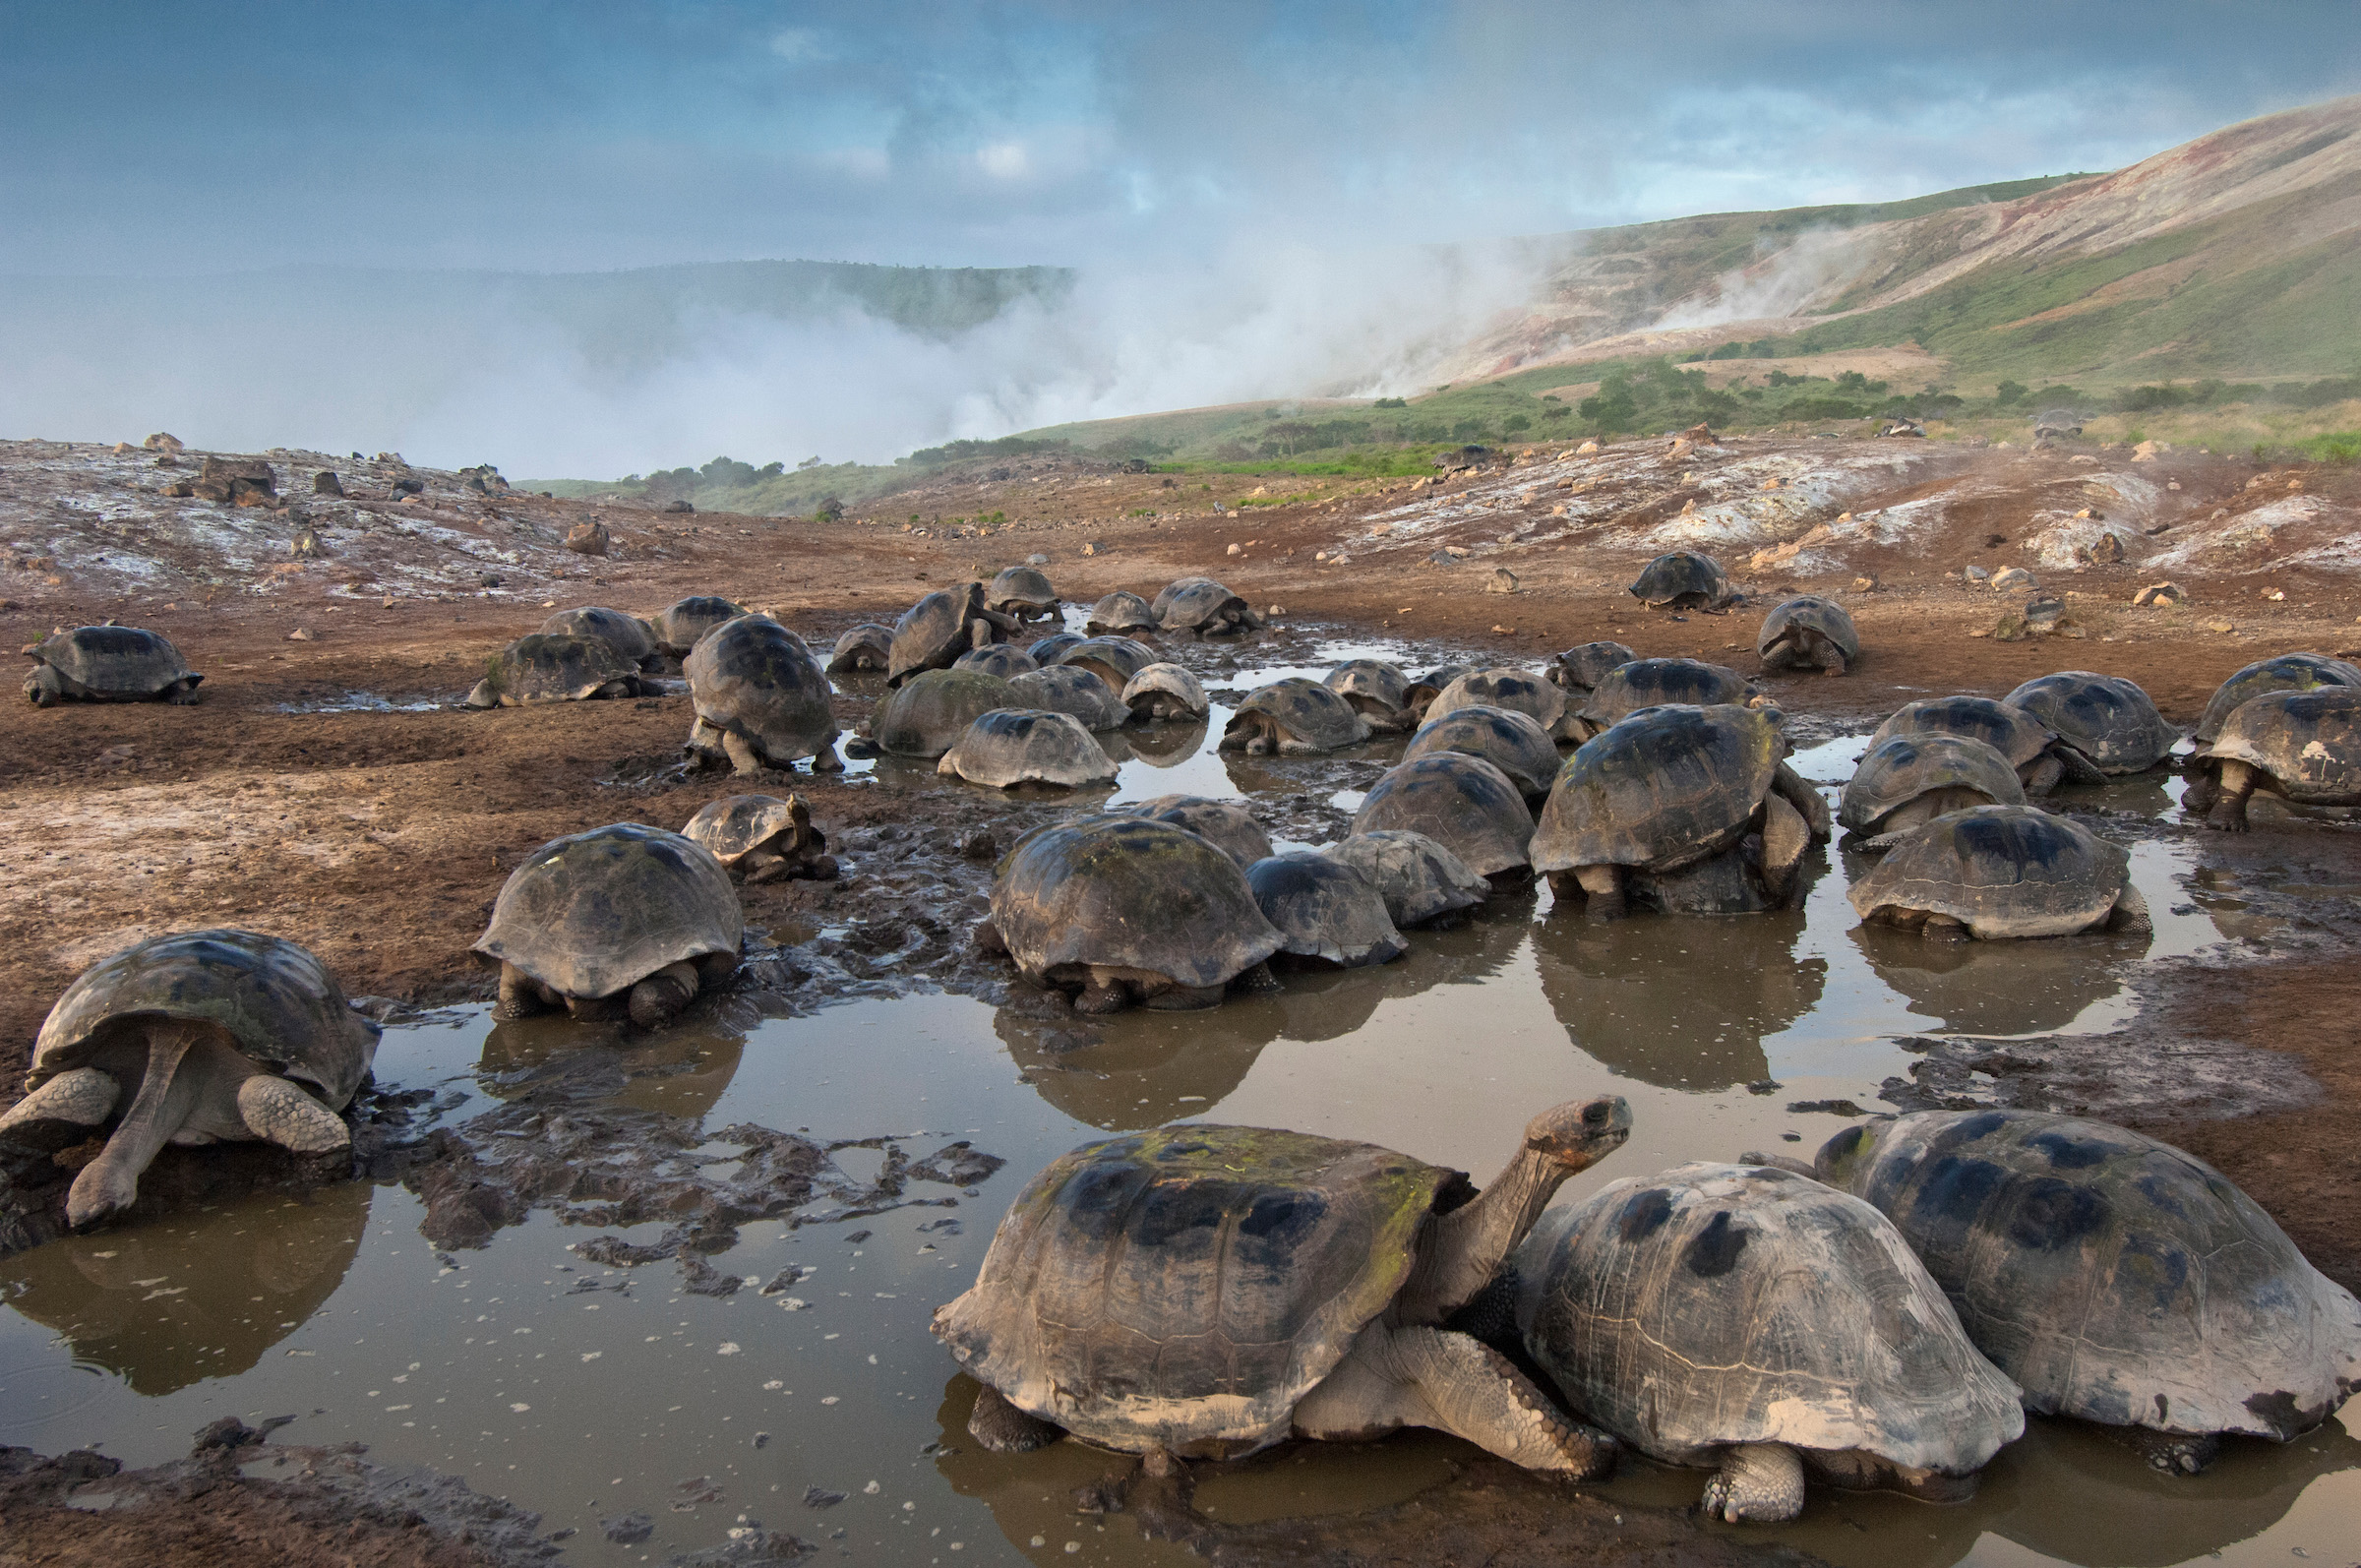 Take a peek at the secret lives of giant tortoises in the Galapagos Islands